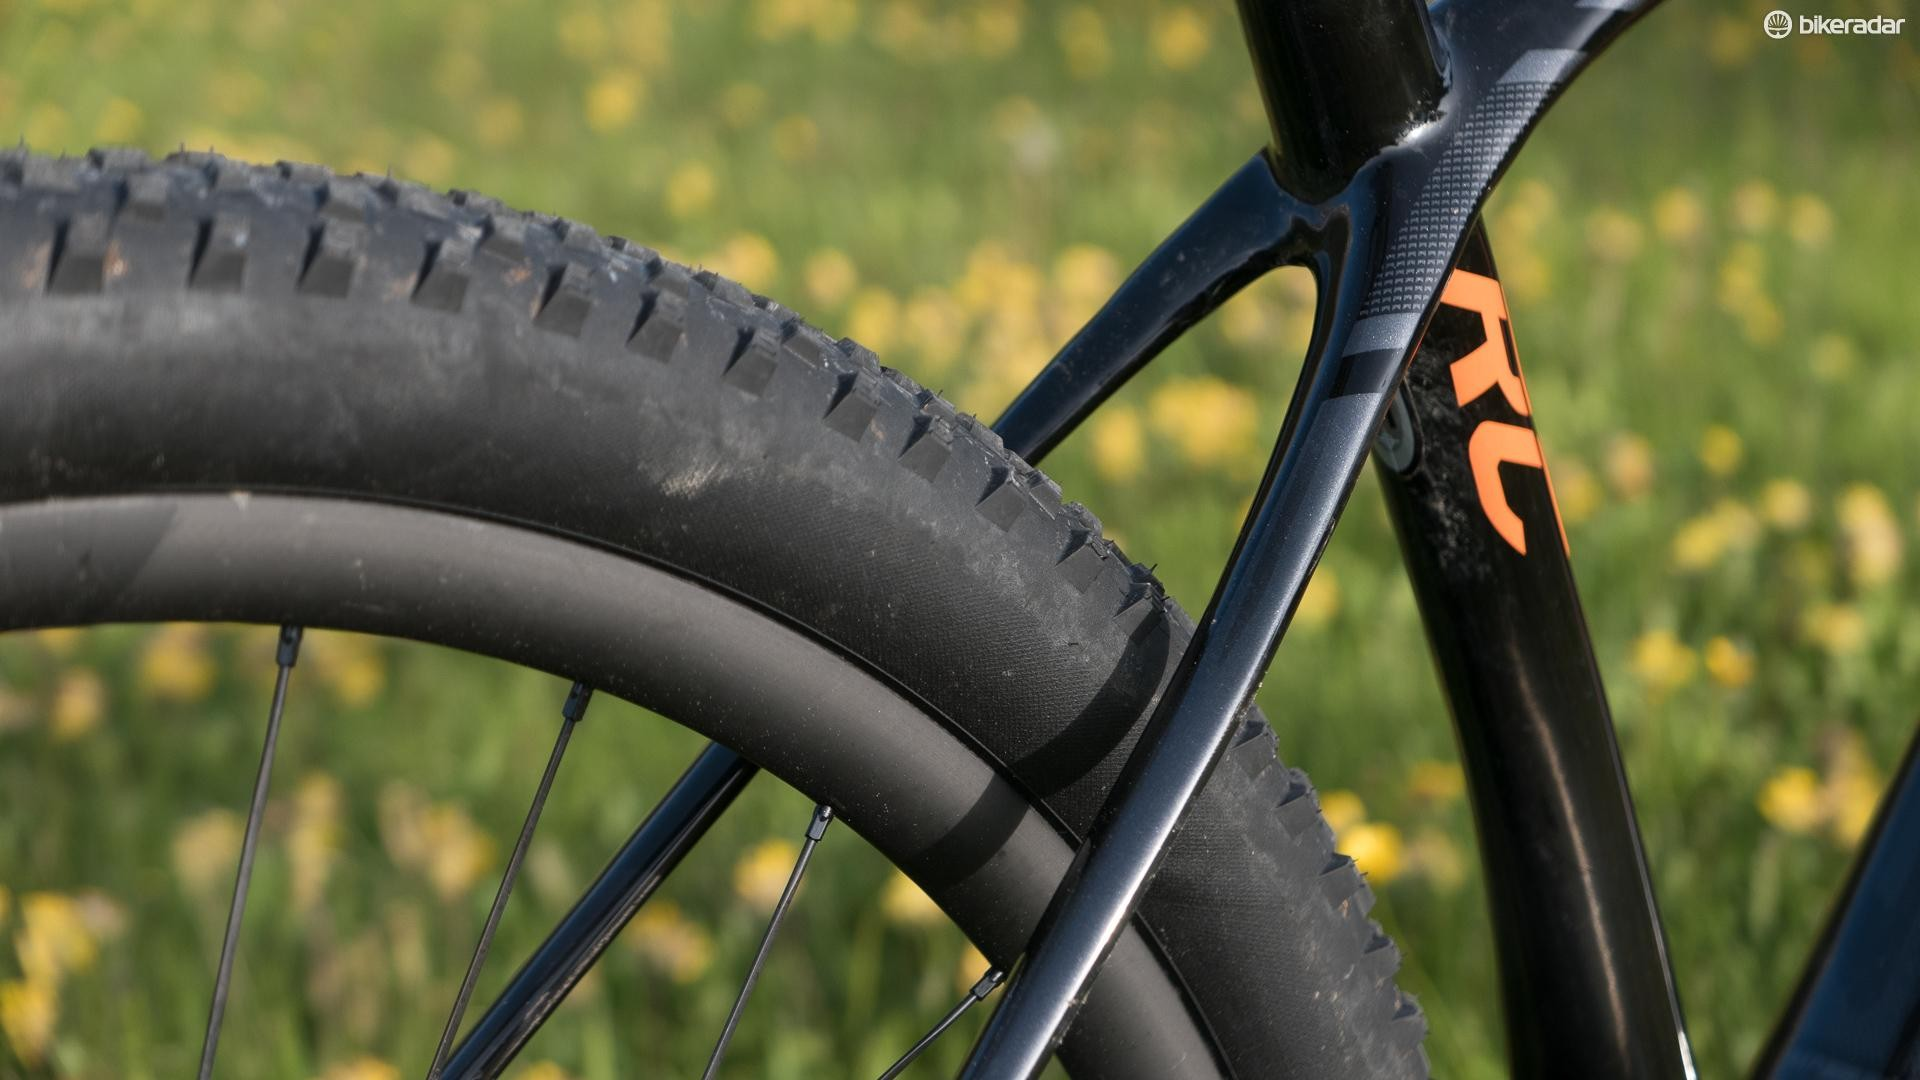 The flattened seatstays are designed to bow outwards to give greater compliance when the rider is stood up